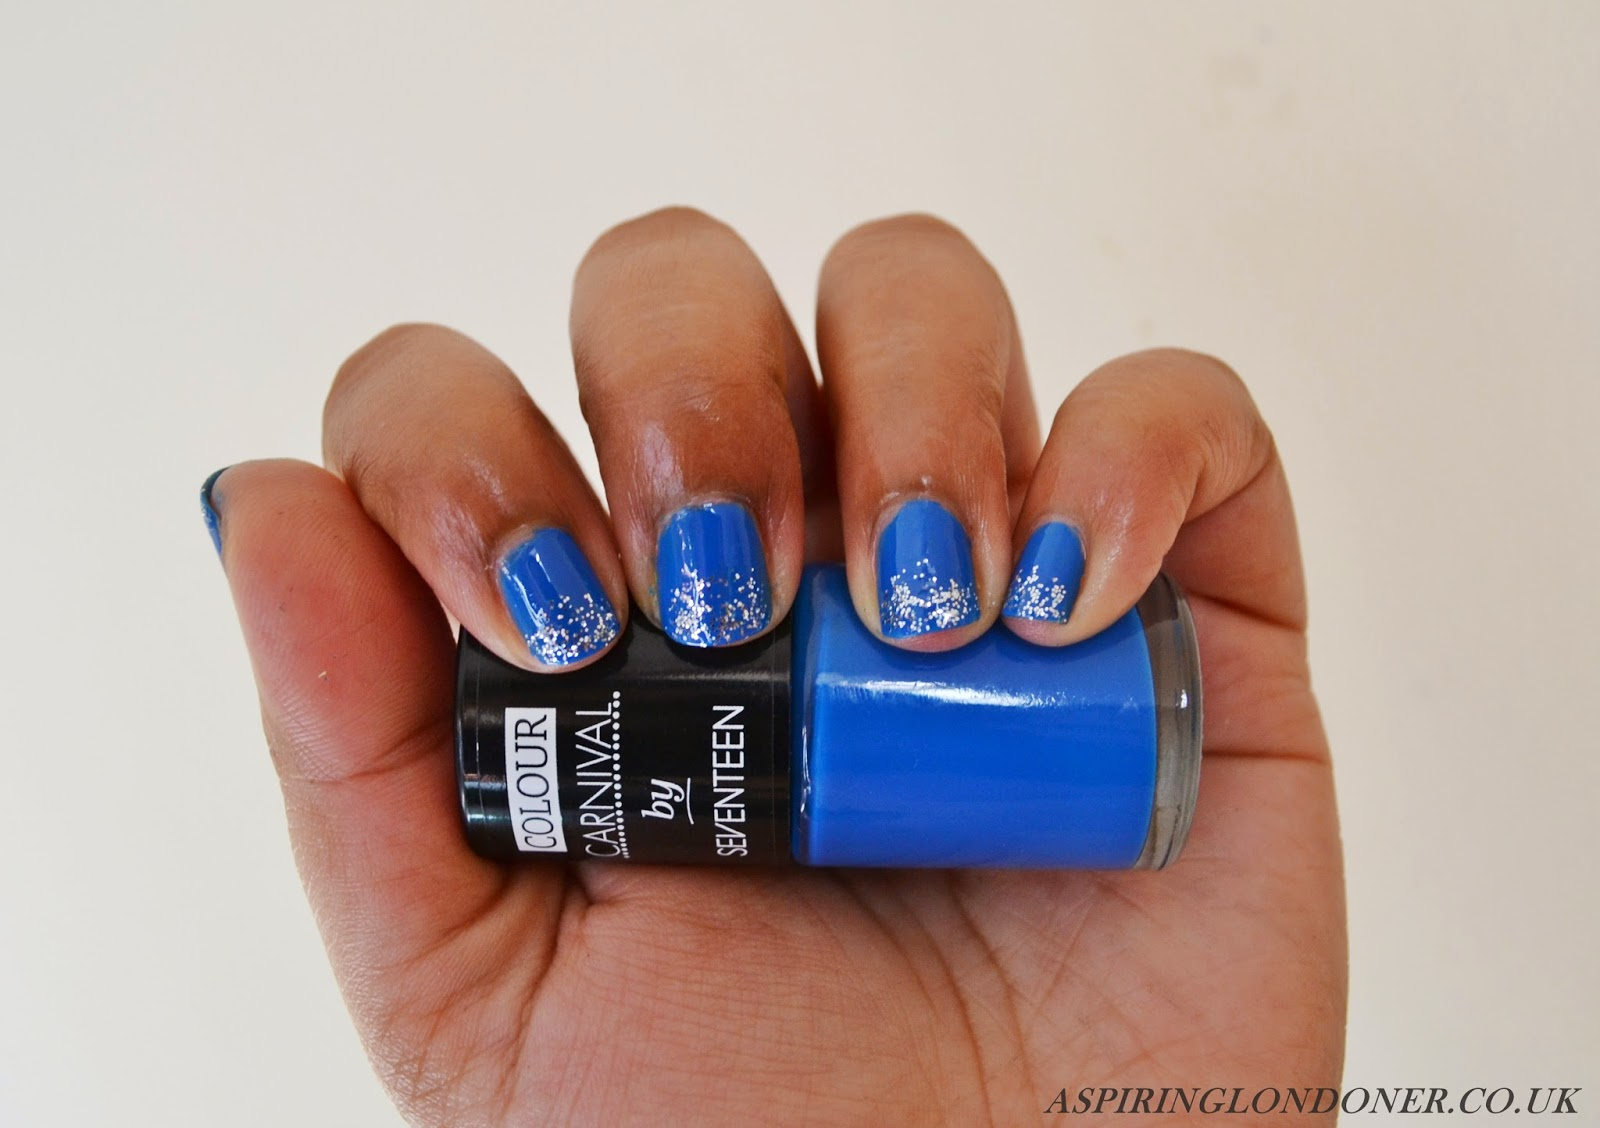 Seventeen Colour Carnival Nail Polish in Blue & Silver Glitter Swatch - Aspiring Londoner